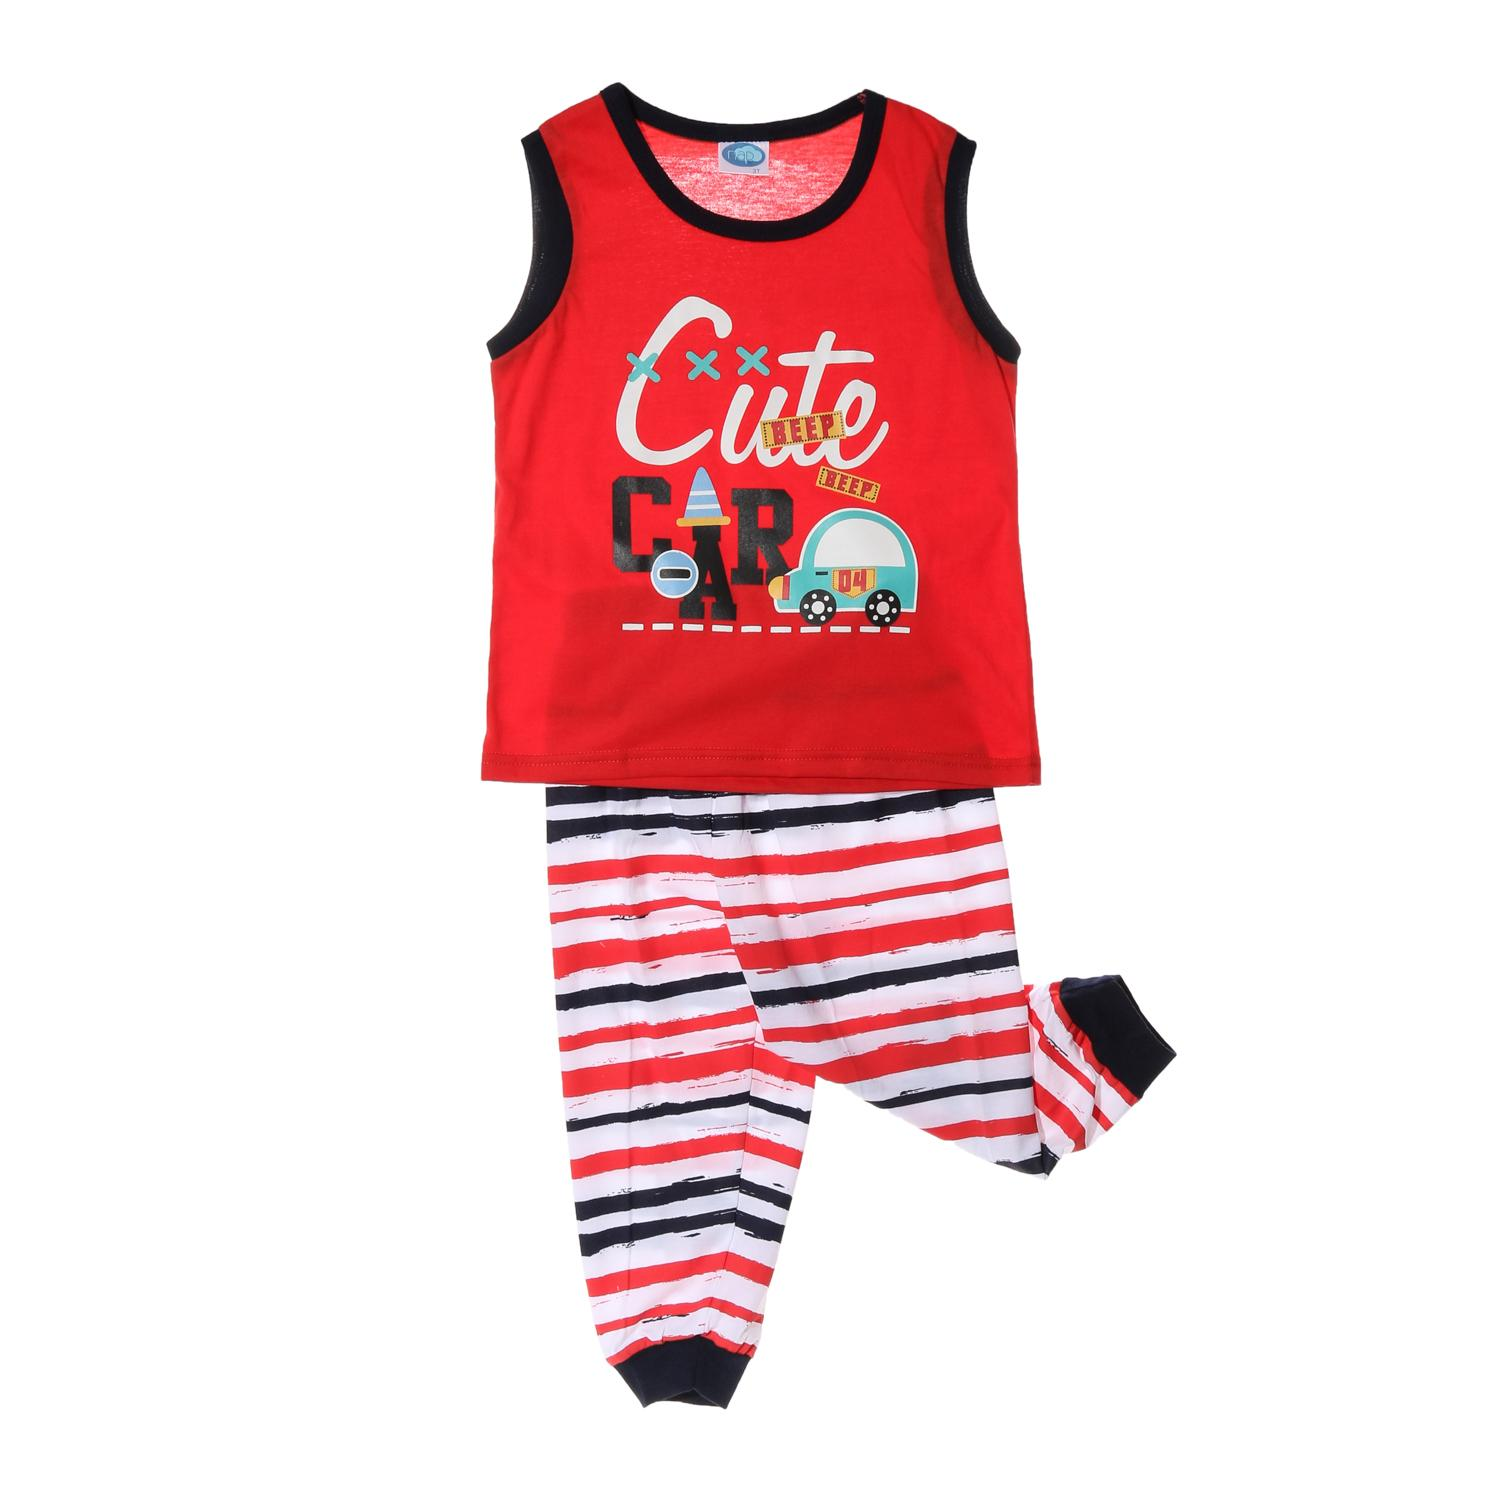 217c7785b4c49 Nap Toddler Boys Cute Beep Beep Pajama Set in Red